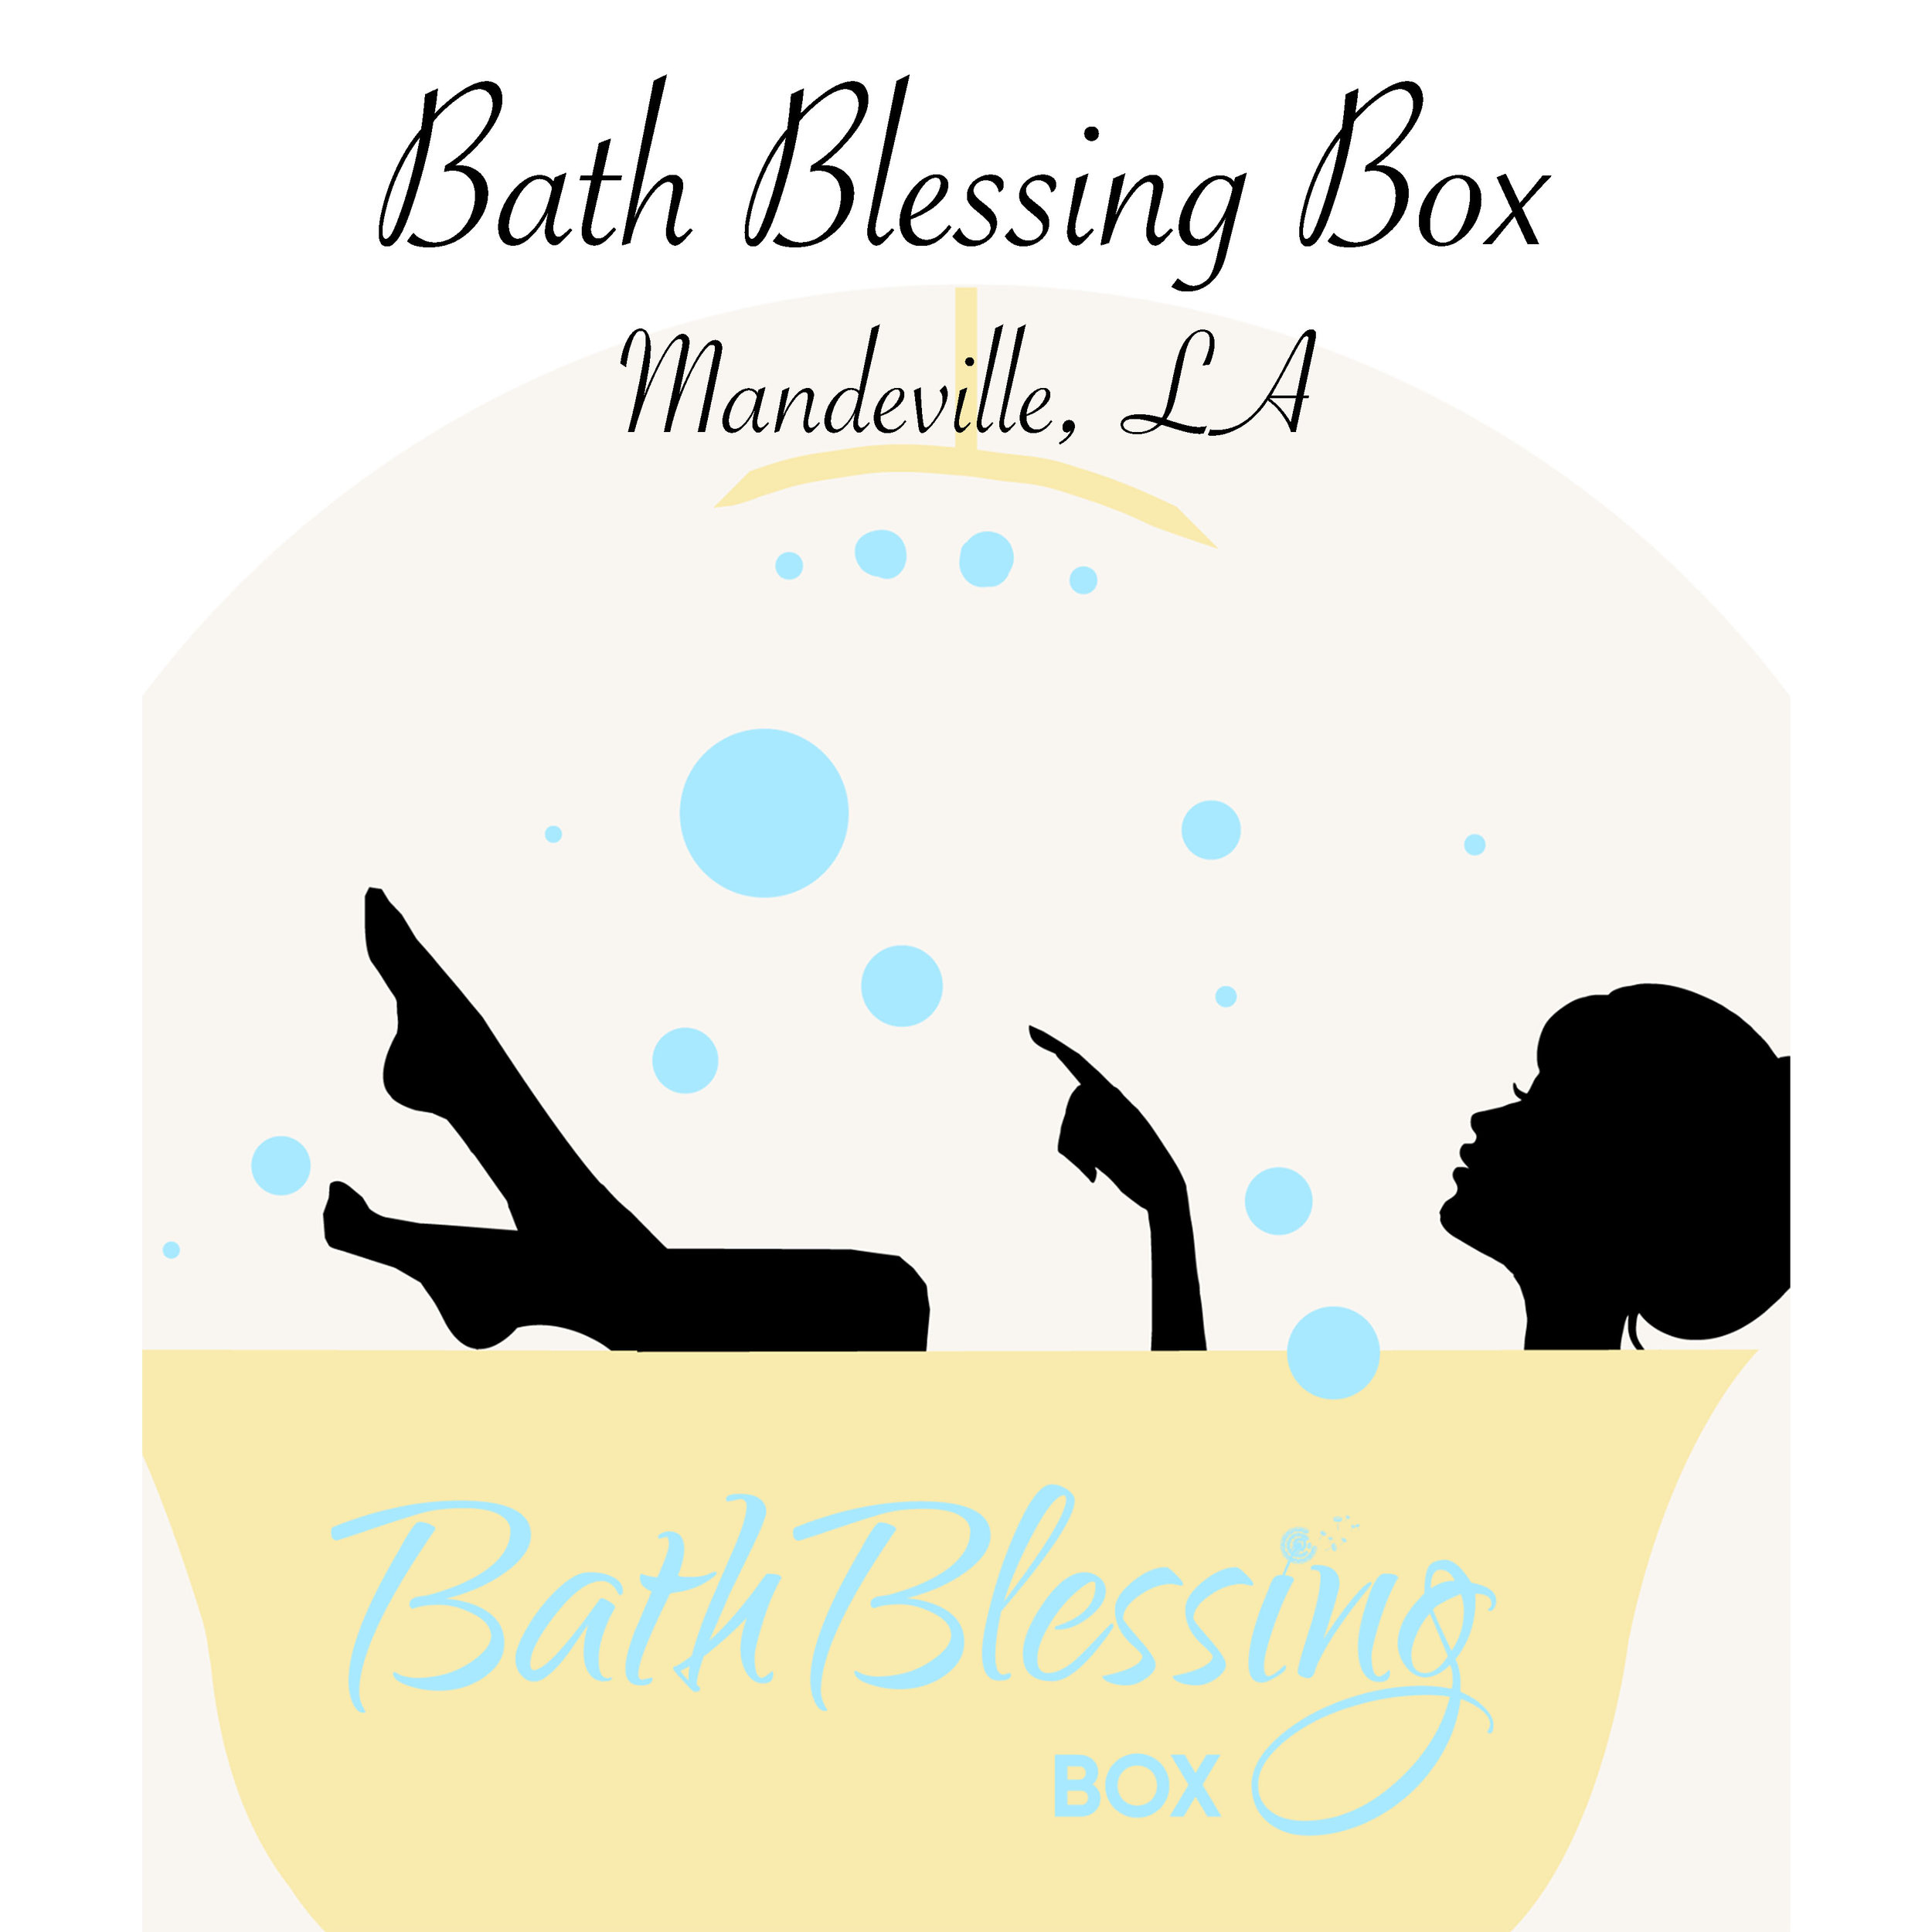 Bath Blessing Box.jpg